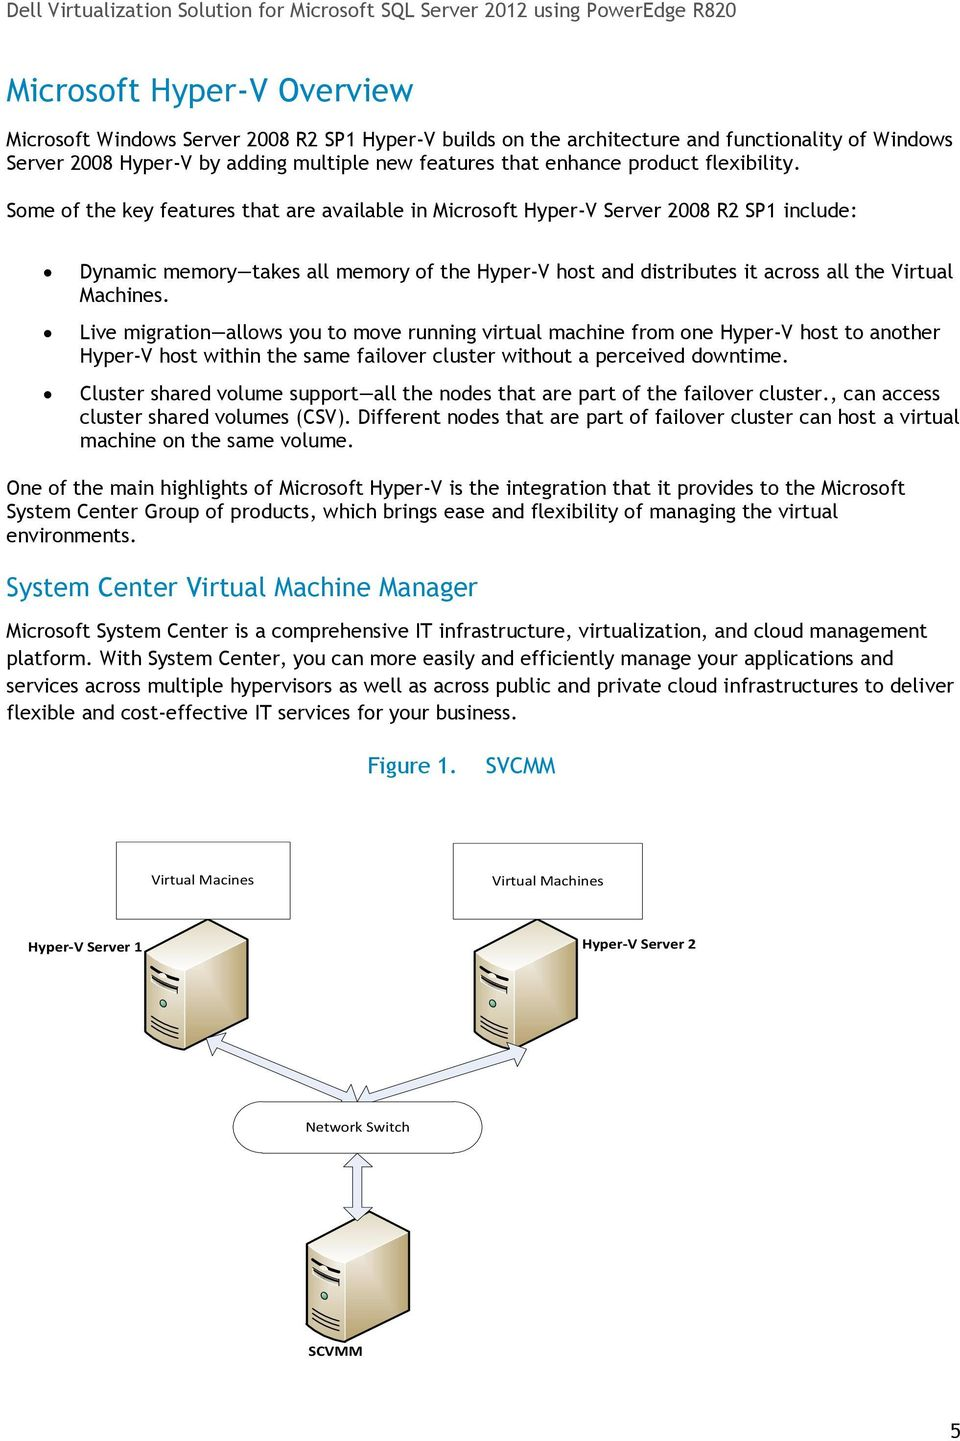 Some of the key features that are available in Microsoft Hyper-V Server 2008 R2 SP1 include: Dynamic memory takes all memory of the Hyper-V host and distributes it across all the Virtual Machines.